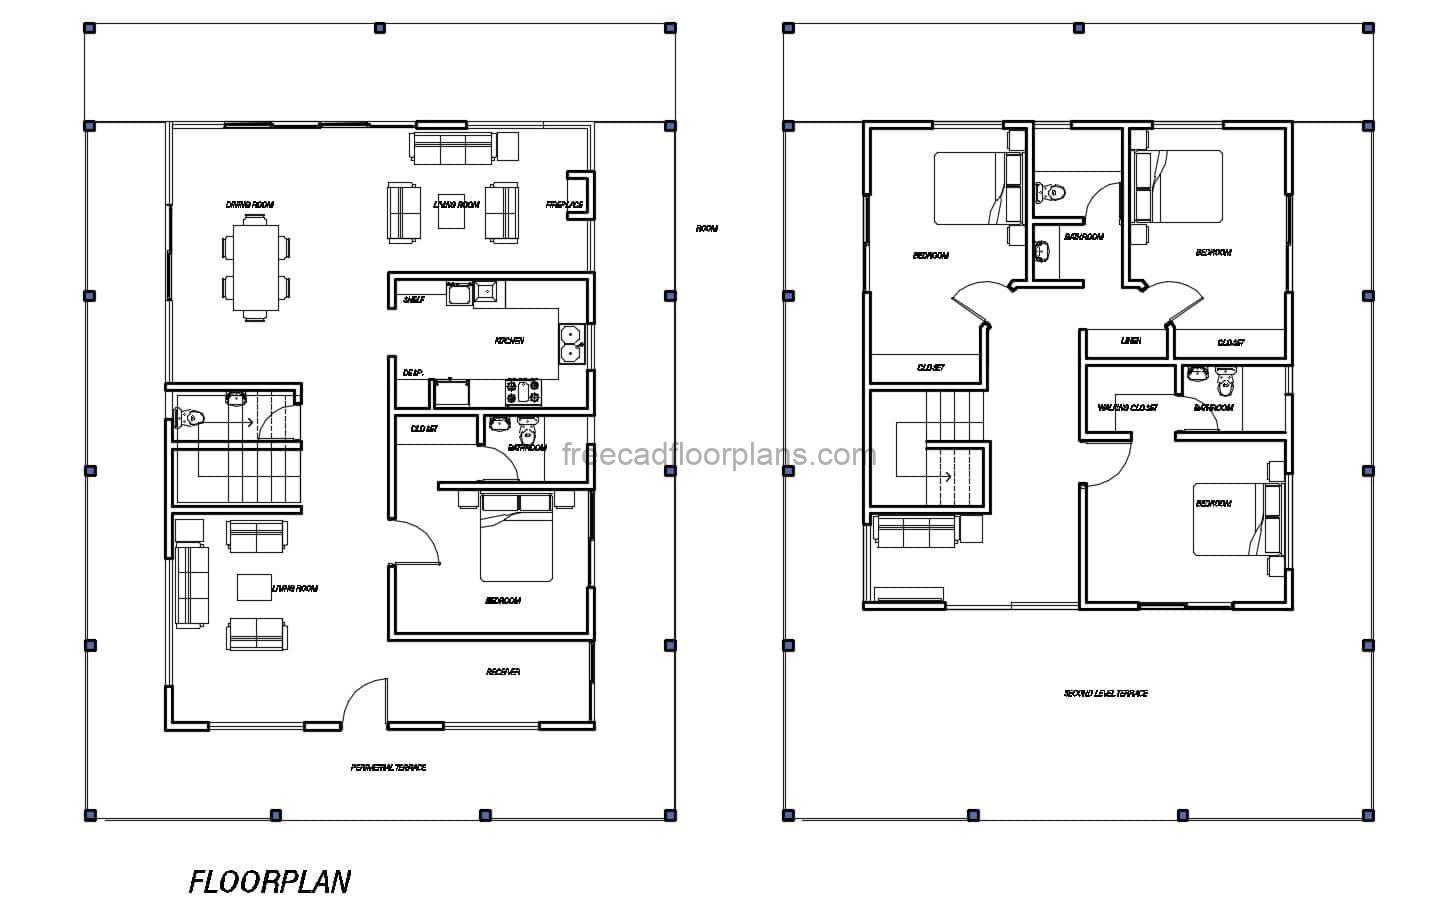 Architectural plan with defined spaces in DWG of a two-story residence with double living room and fireplace in the back room. Four bedrooms in total, master bedroom on second level, all bedrooms have access to terrace, living room, kitchen and dining room on first level. Architectural layout in 2D floor plan in DWG format for free download.